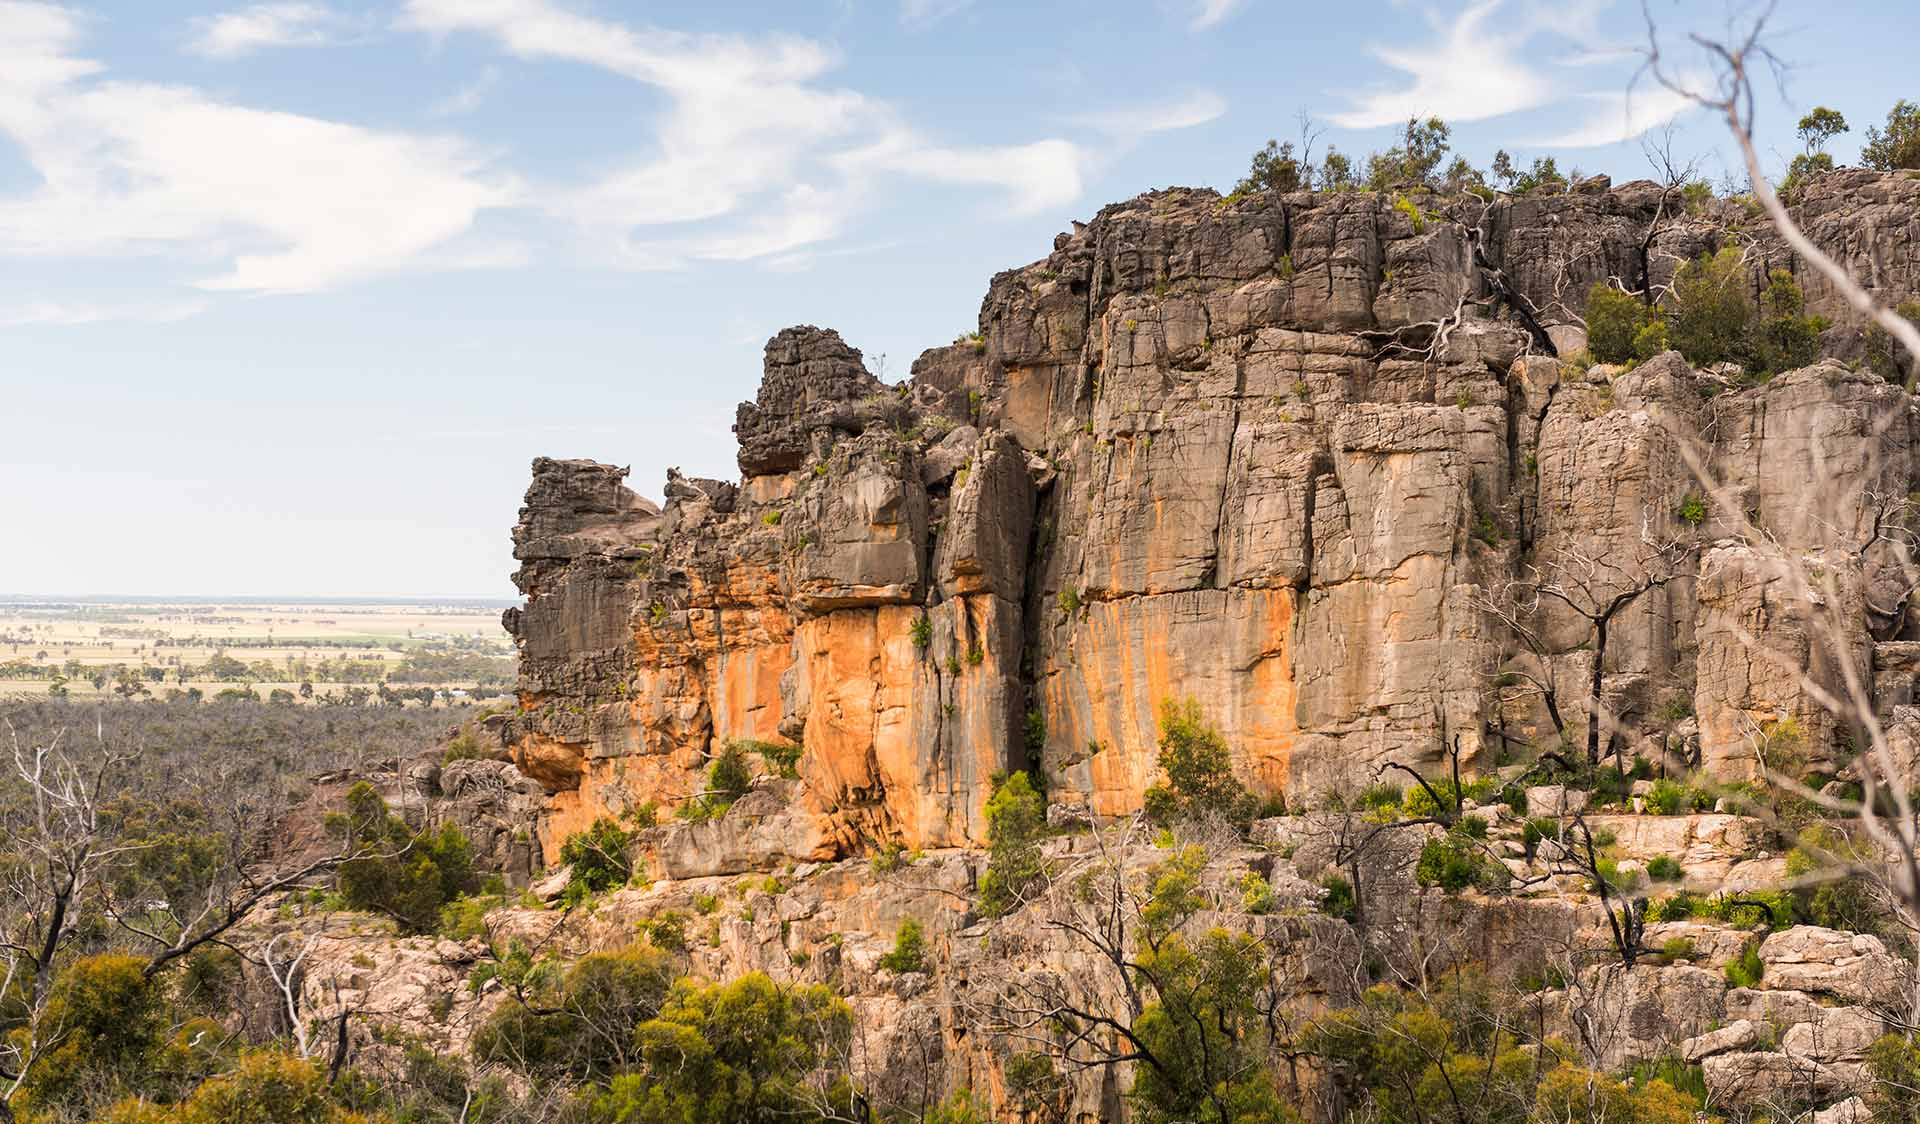 The view of the rock formations at Hollow Mountain in the Grampians National Park.